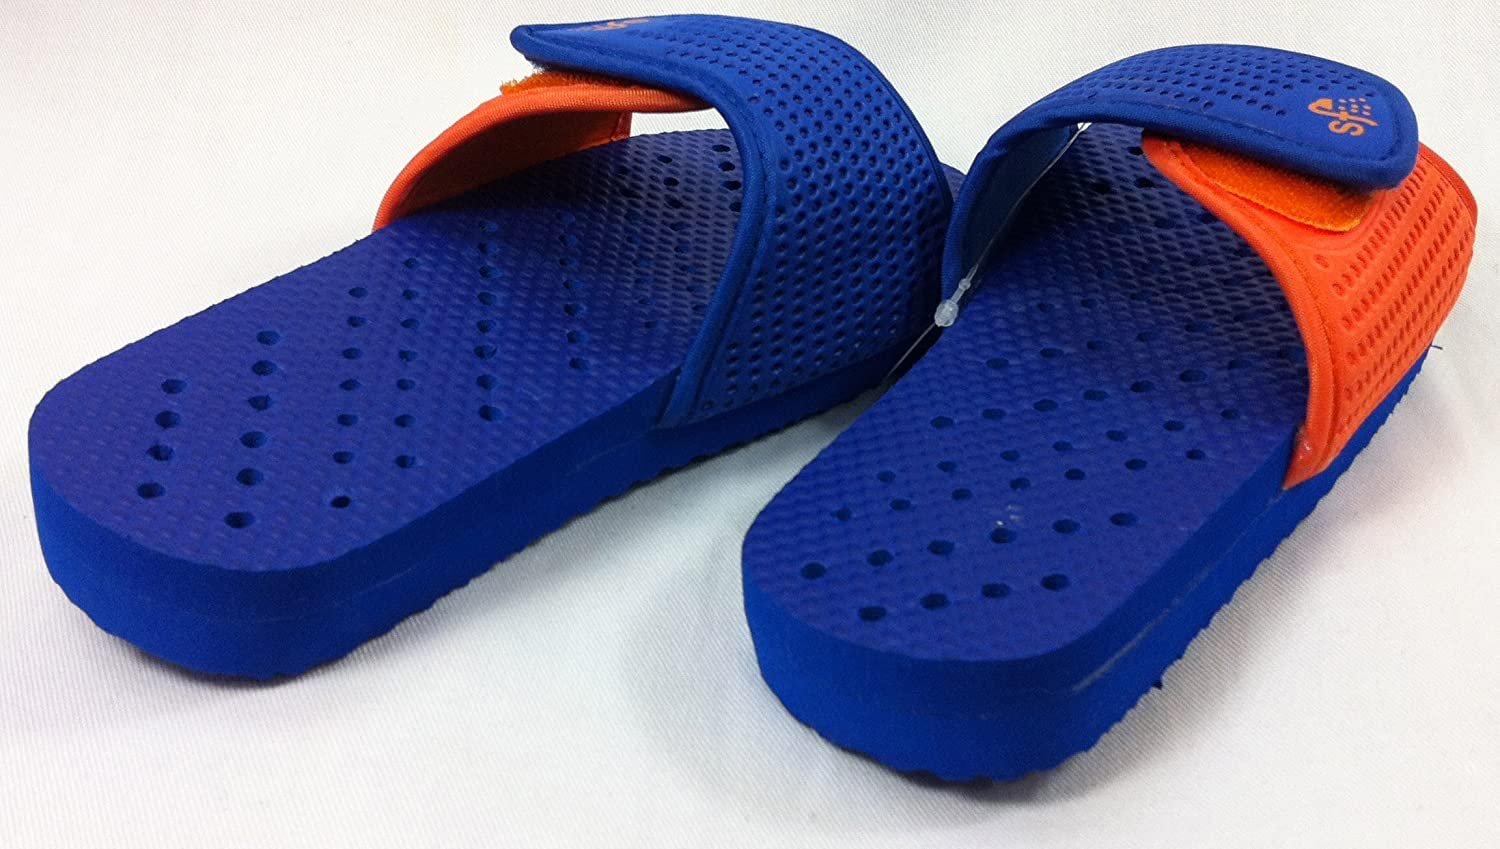 093162f56b58 Showaflops Mens Antimicrobial Shower   Water Sandals For Pool Beach Dorm  And  Amazon.in  Clothing   Accessories